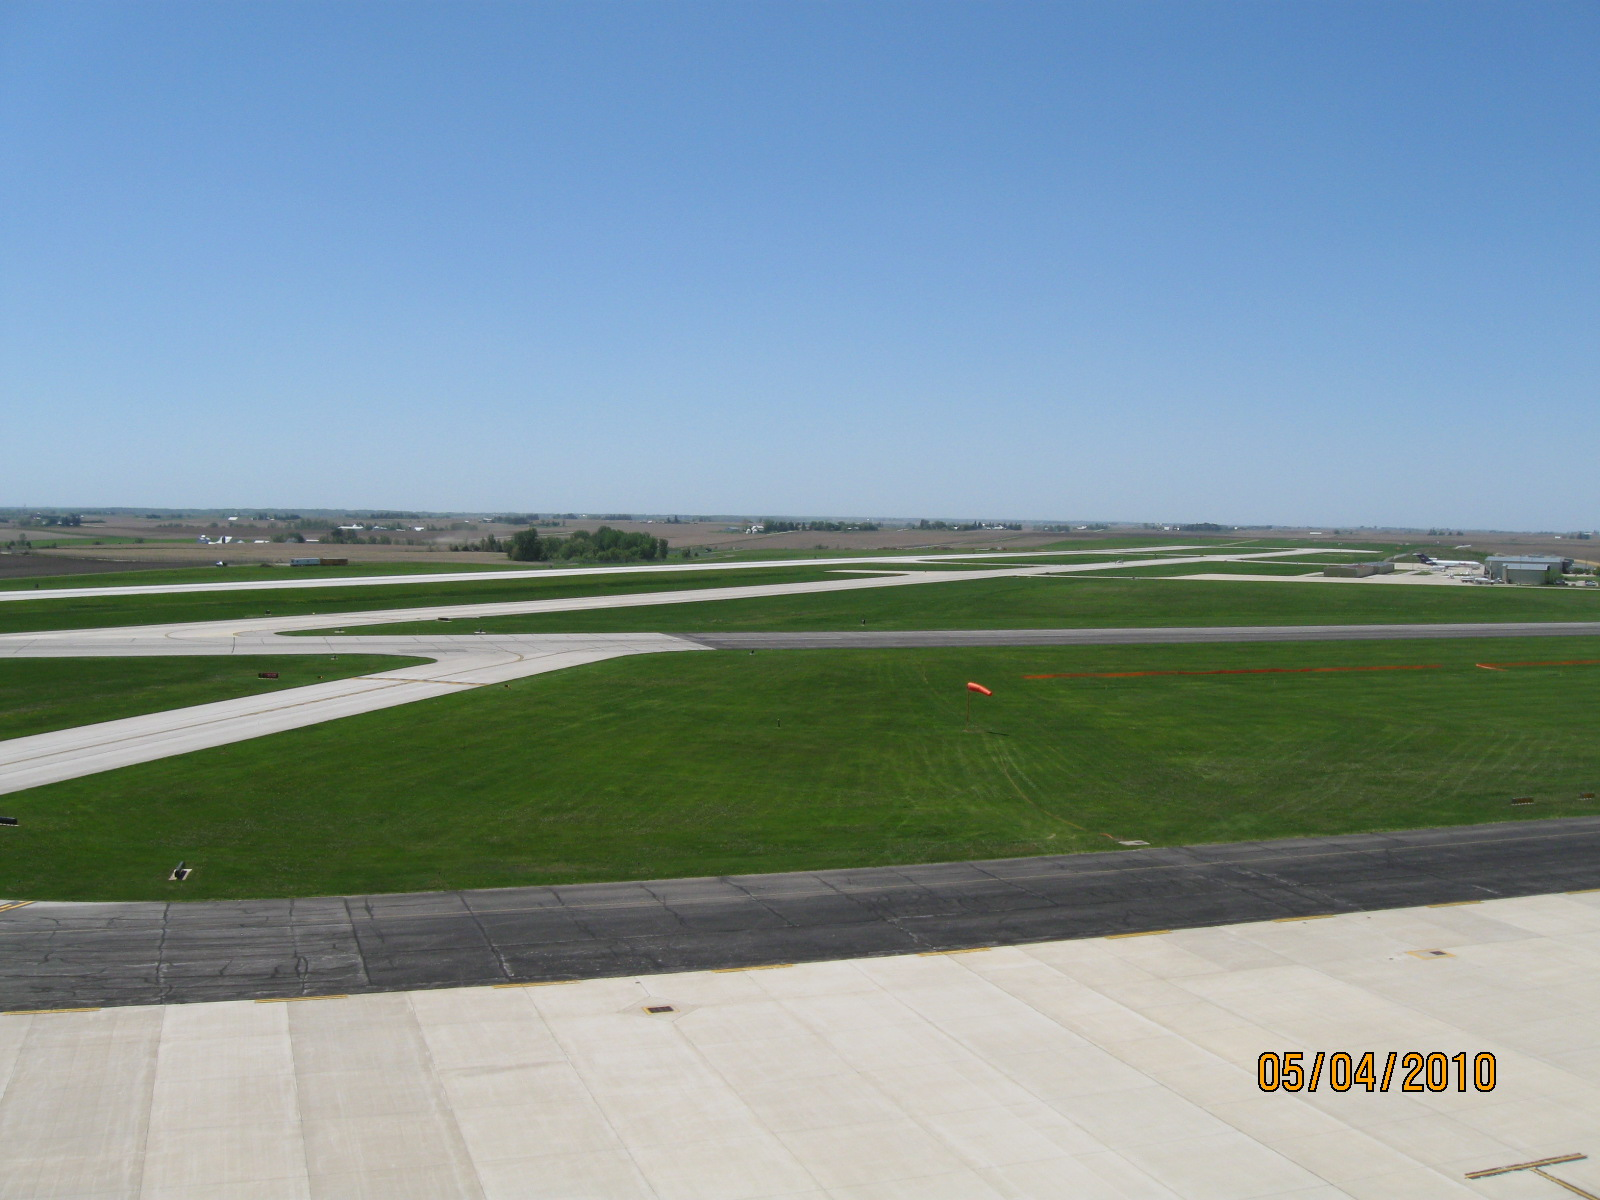 Runway 9/27 at the Eastern Iowa Airport